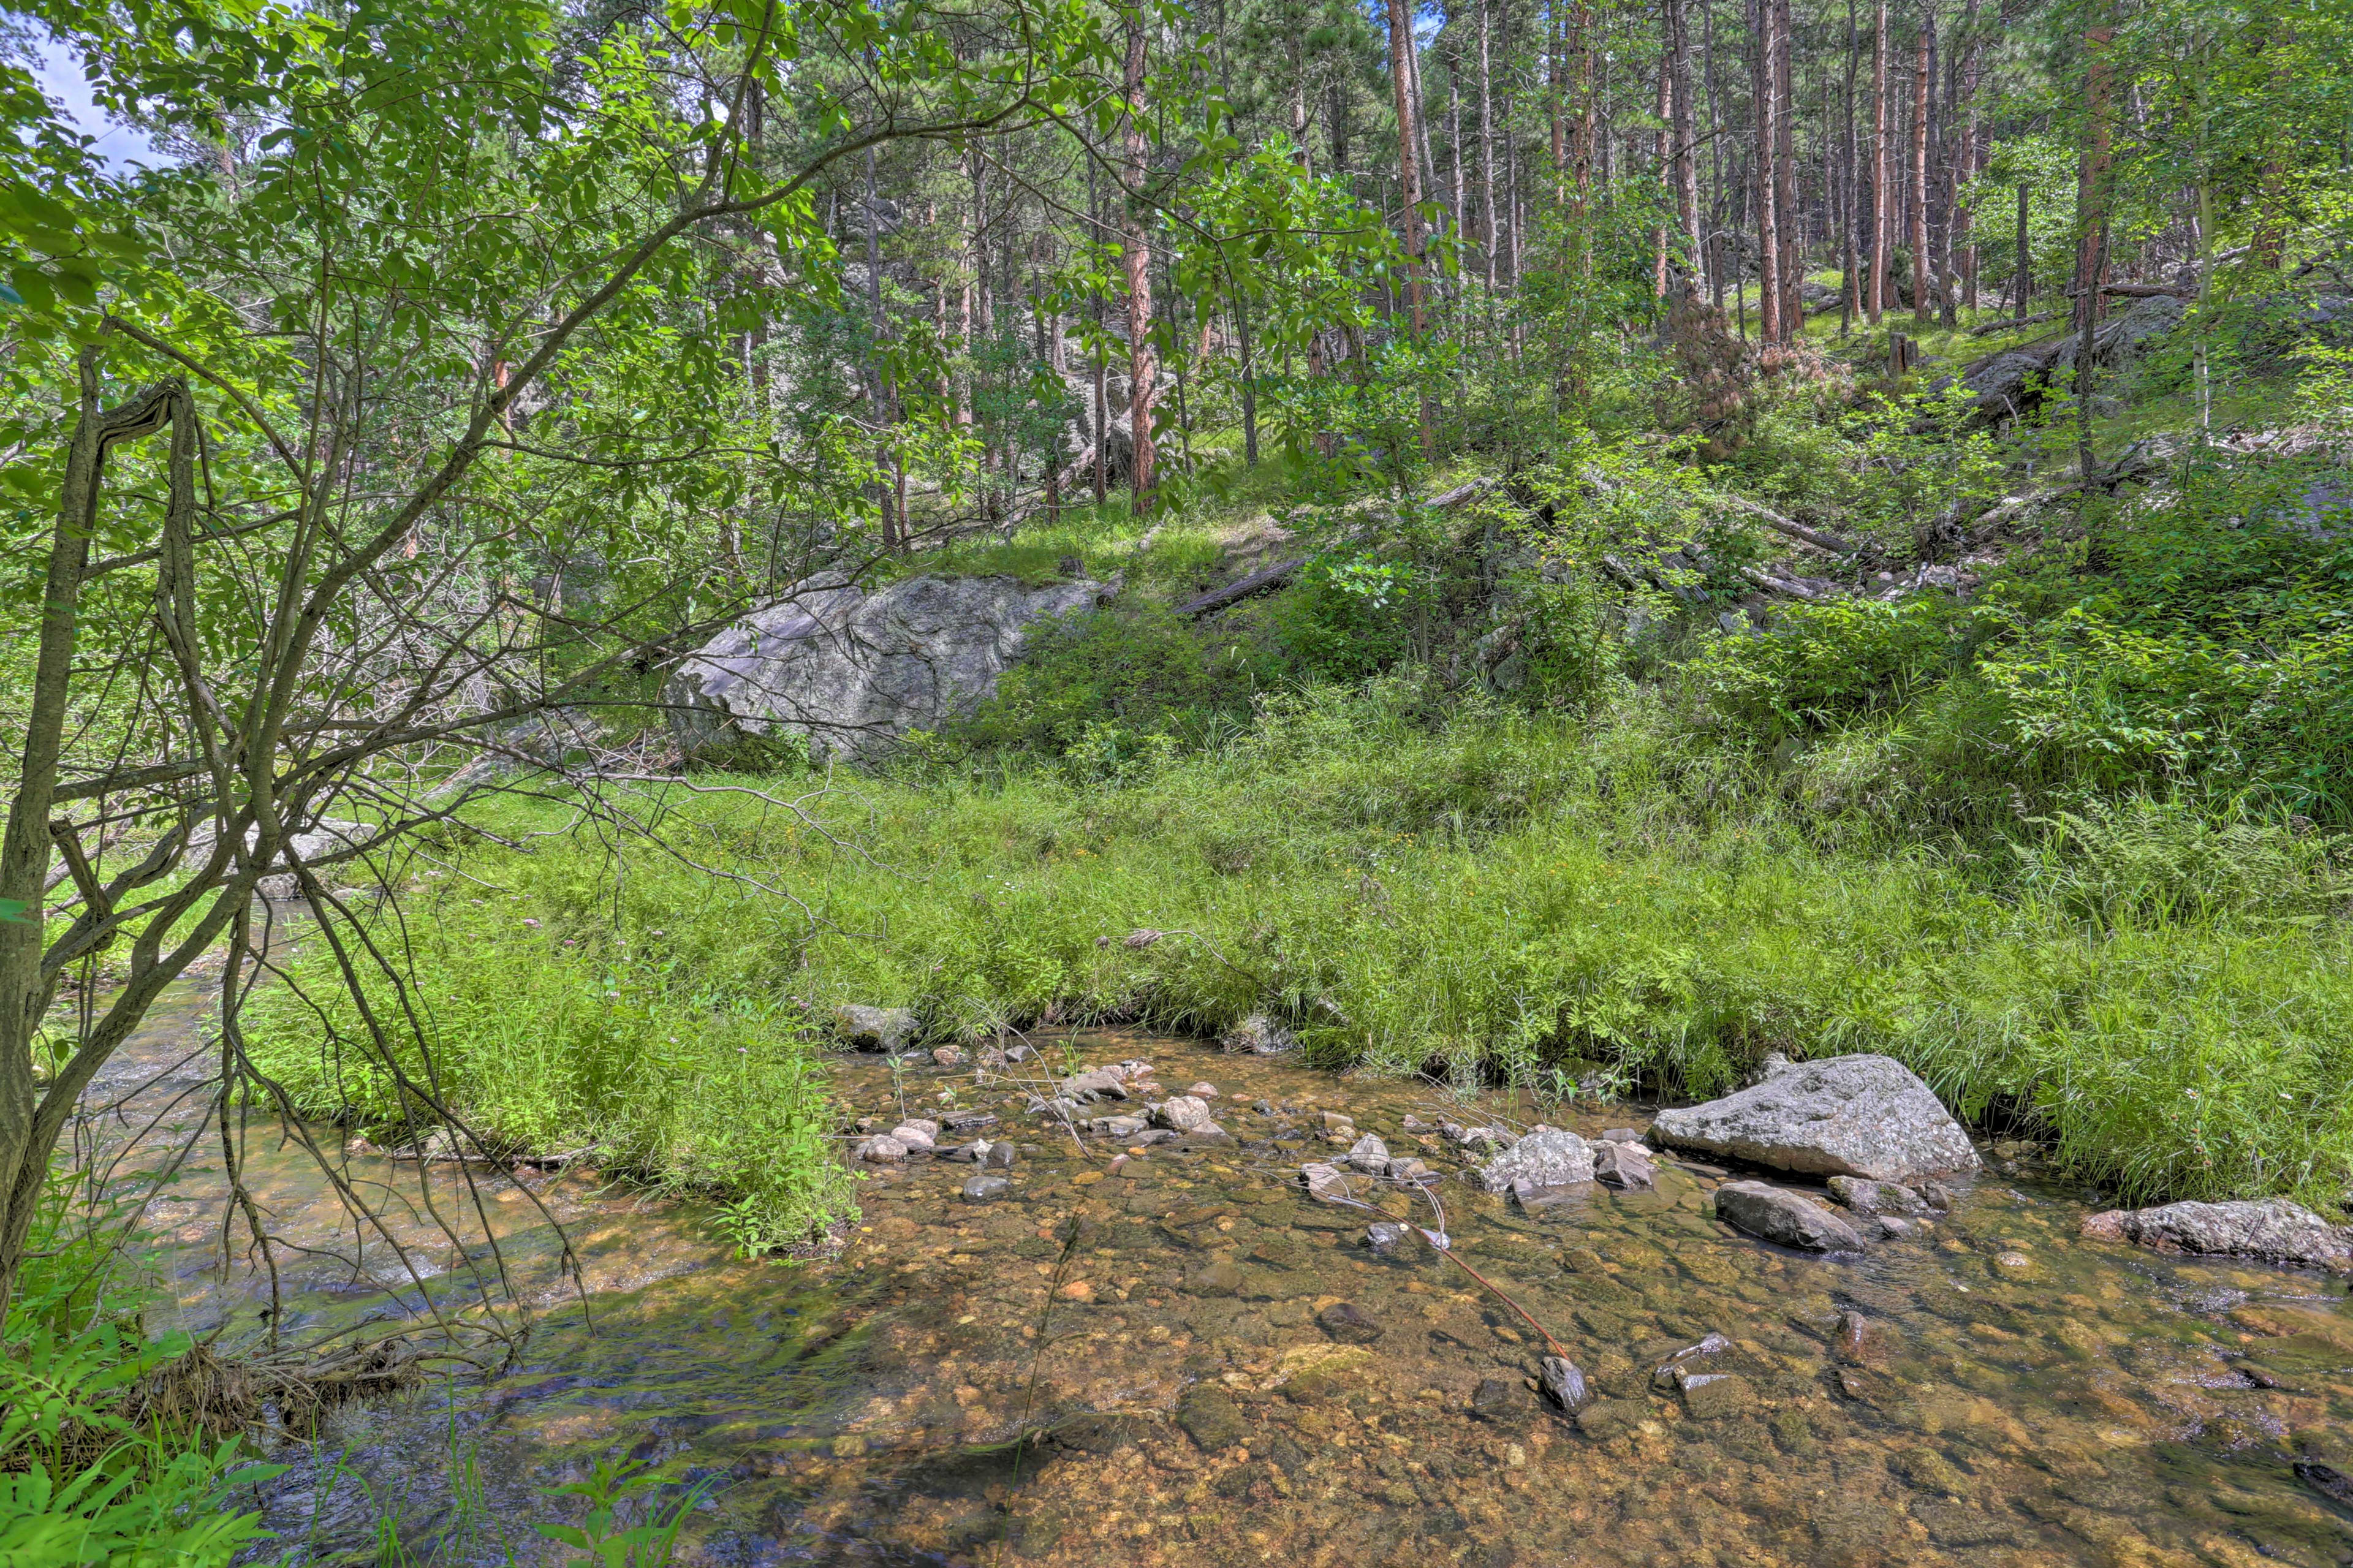 Listen to the relaxing sounds of the creek.